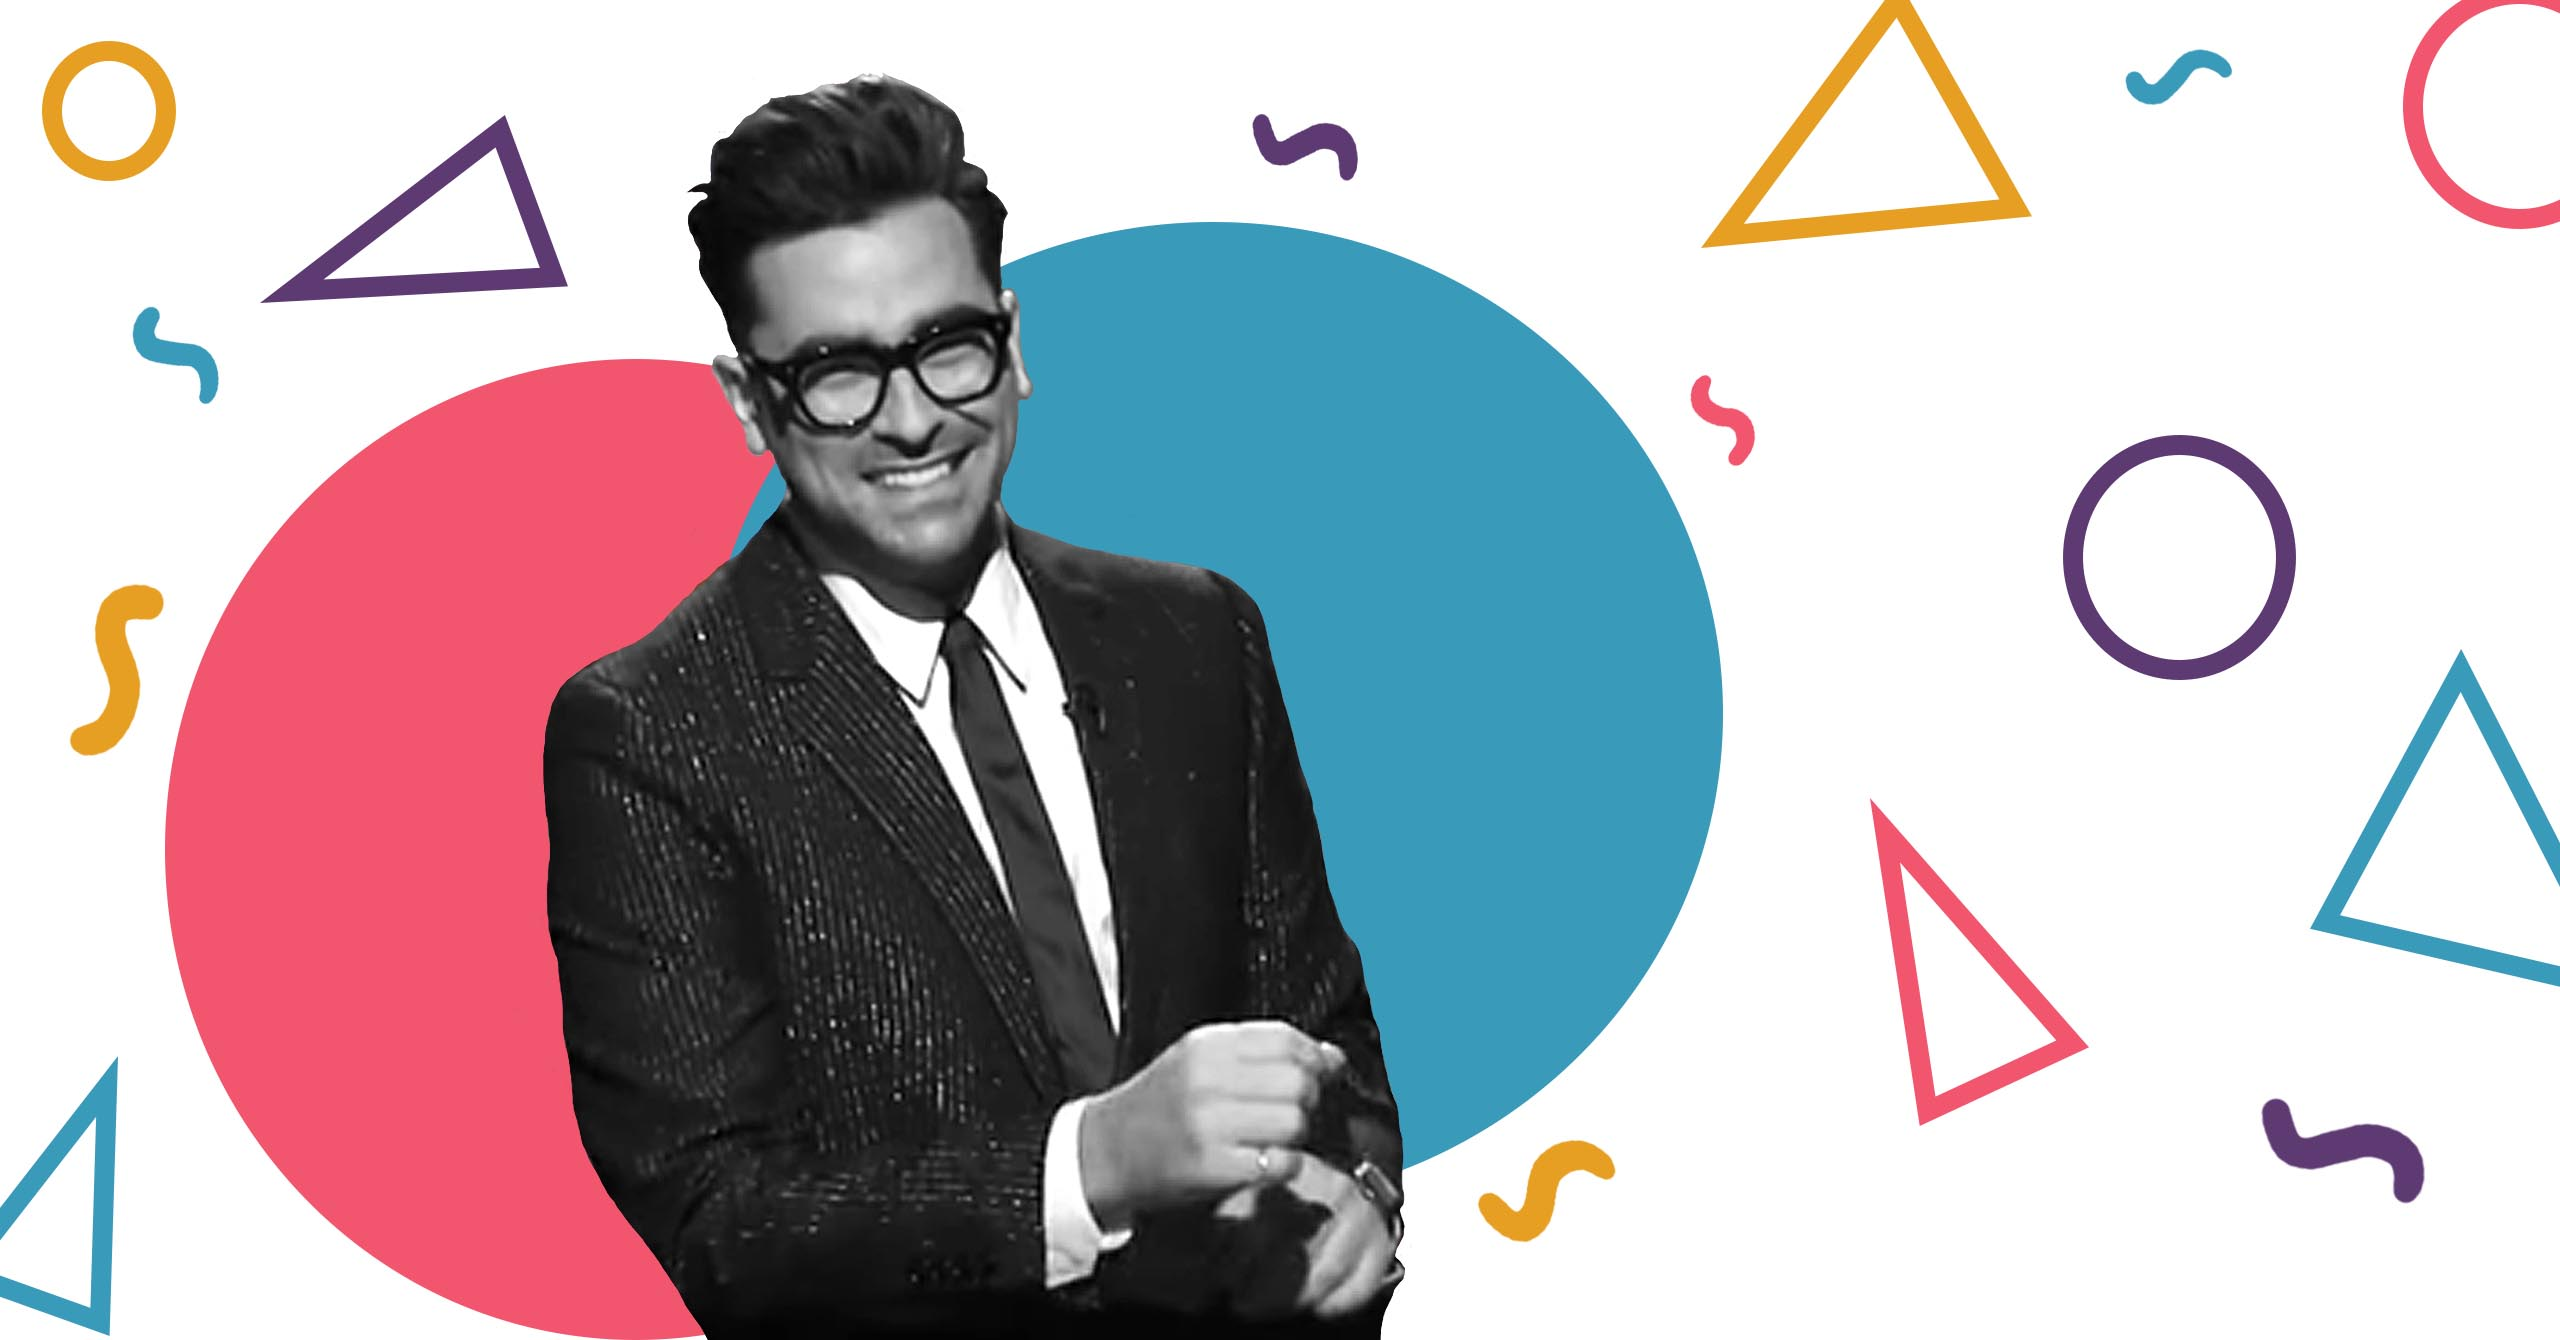 Banner image of Dan Levy smiling with shapes behind him